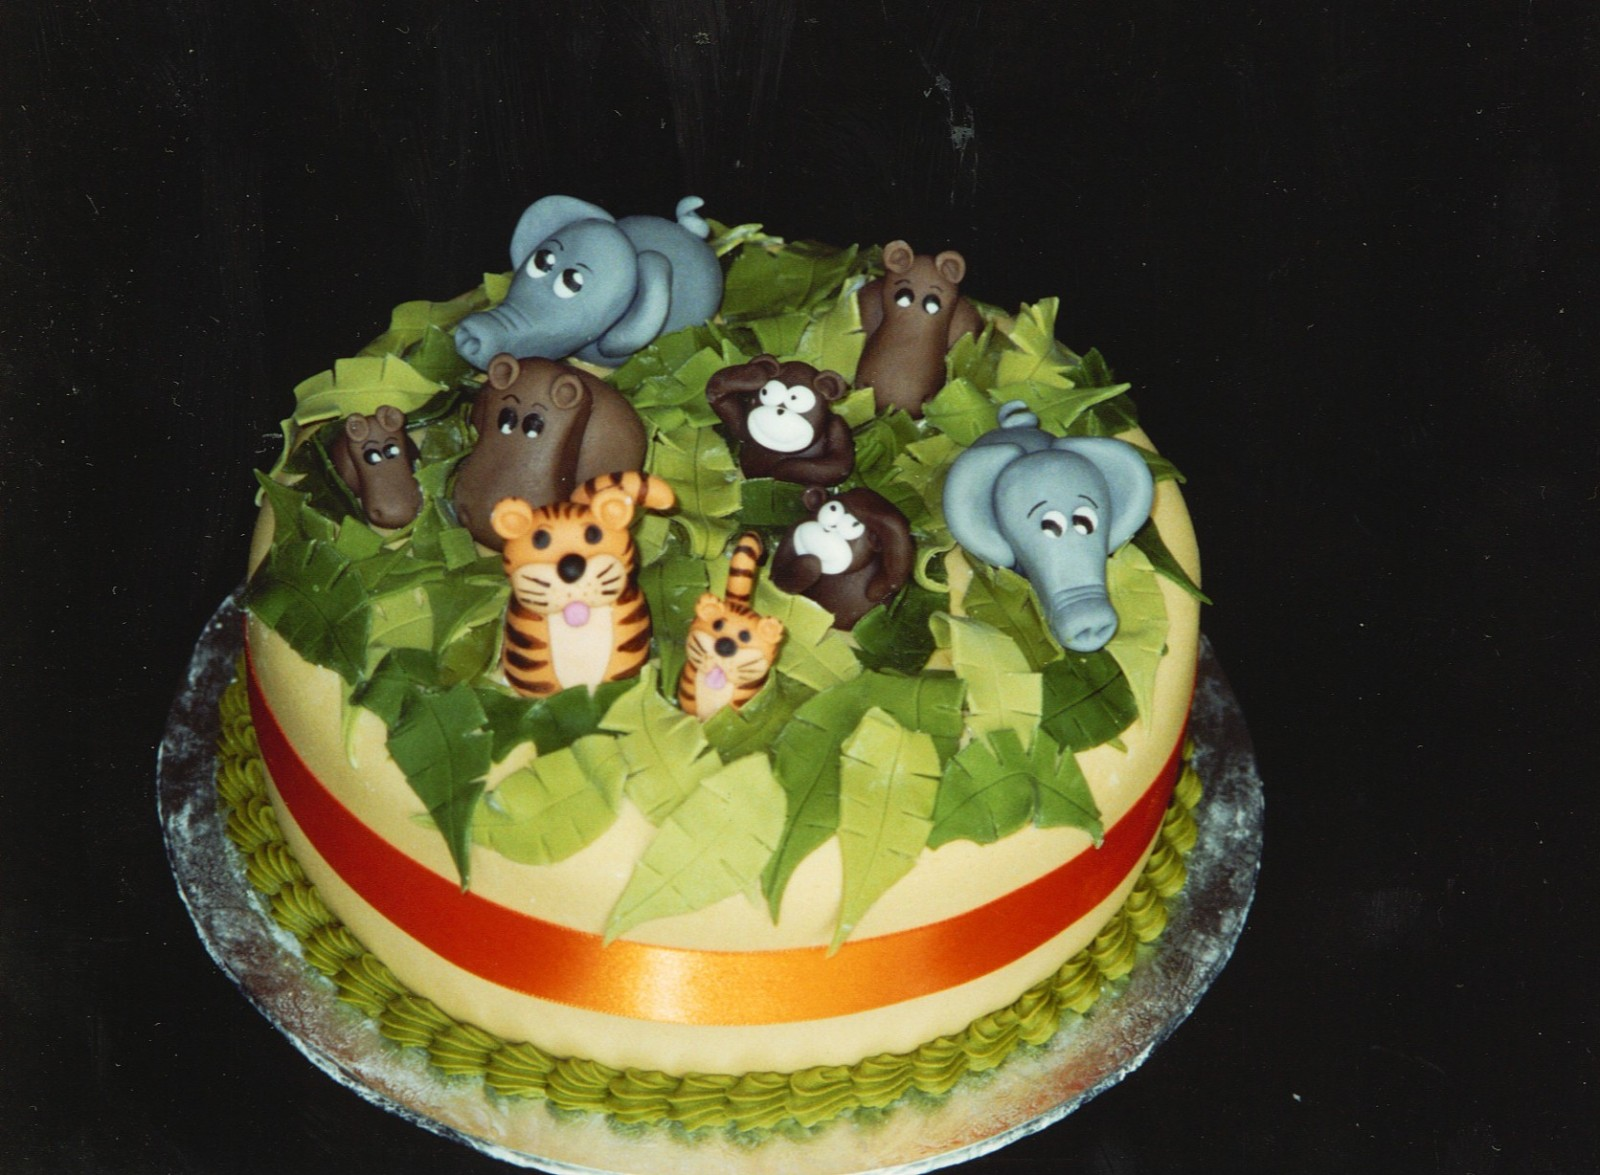 Cake Theme For Birthday : Jungle Animal Themed Birthday Cake Susie s Cakes